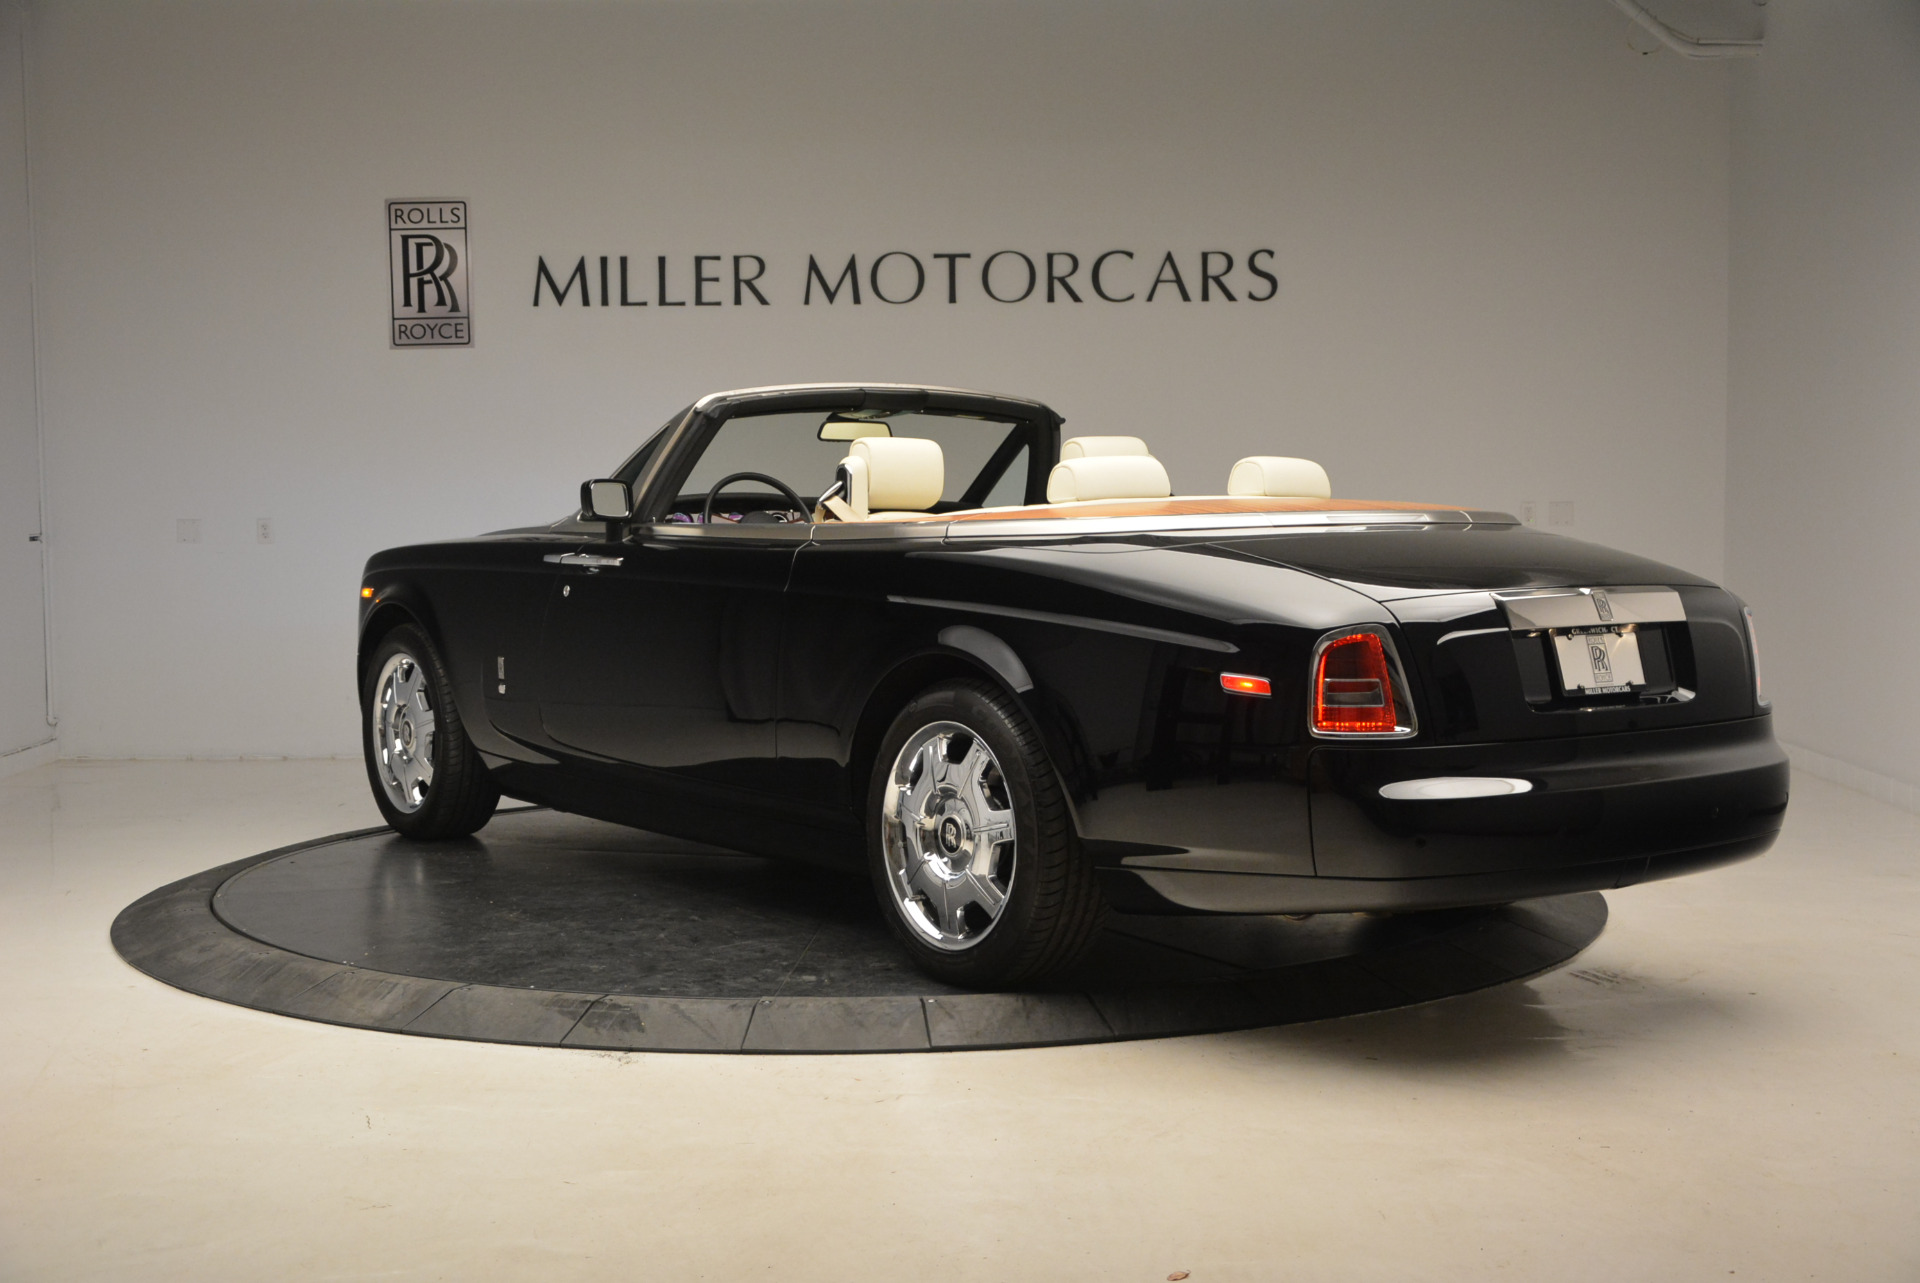 Used 2009 Rolls-Royce Phantom Drophead Coupe  For Sale In Westport, CT 1792_p5